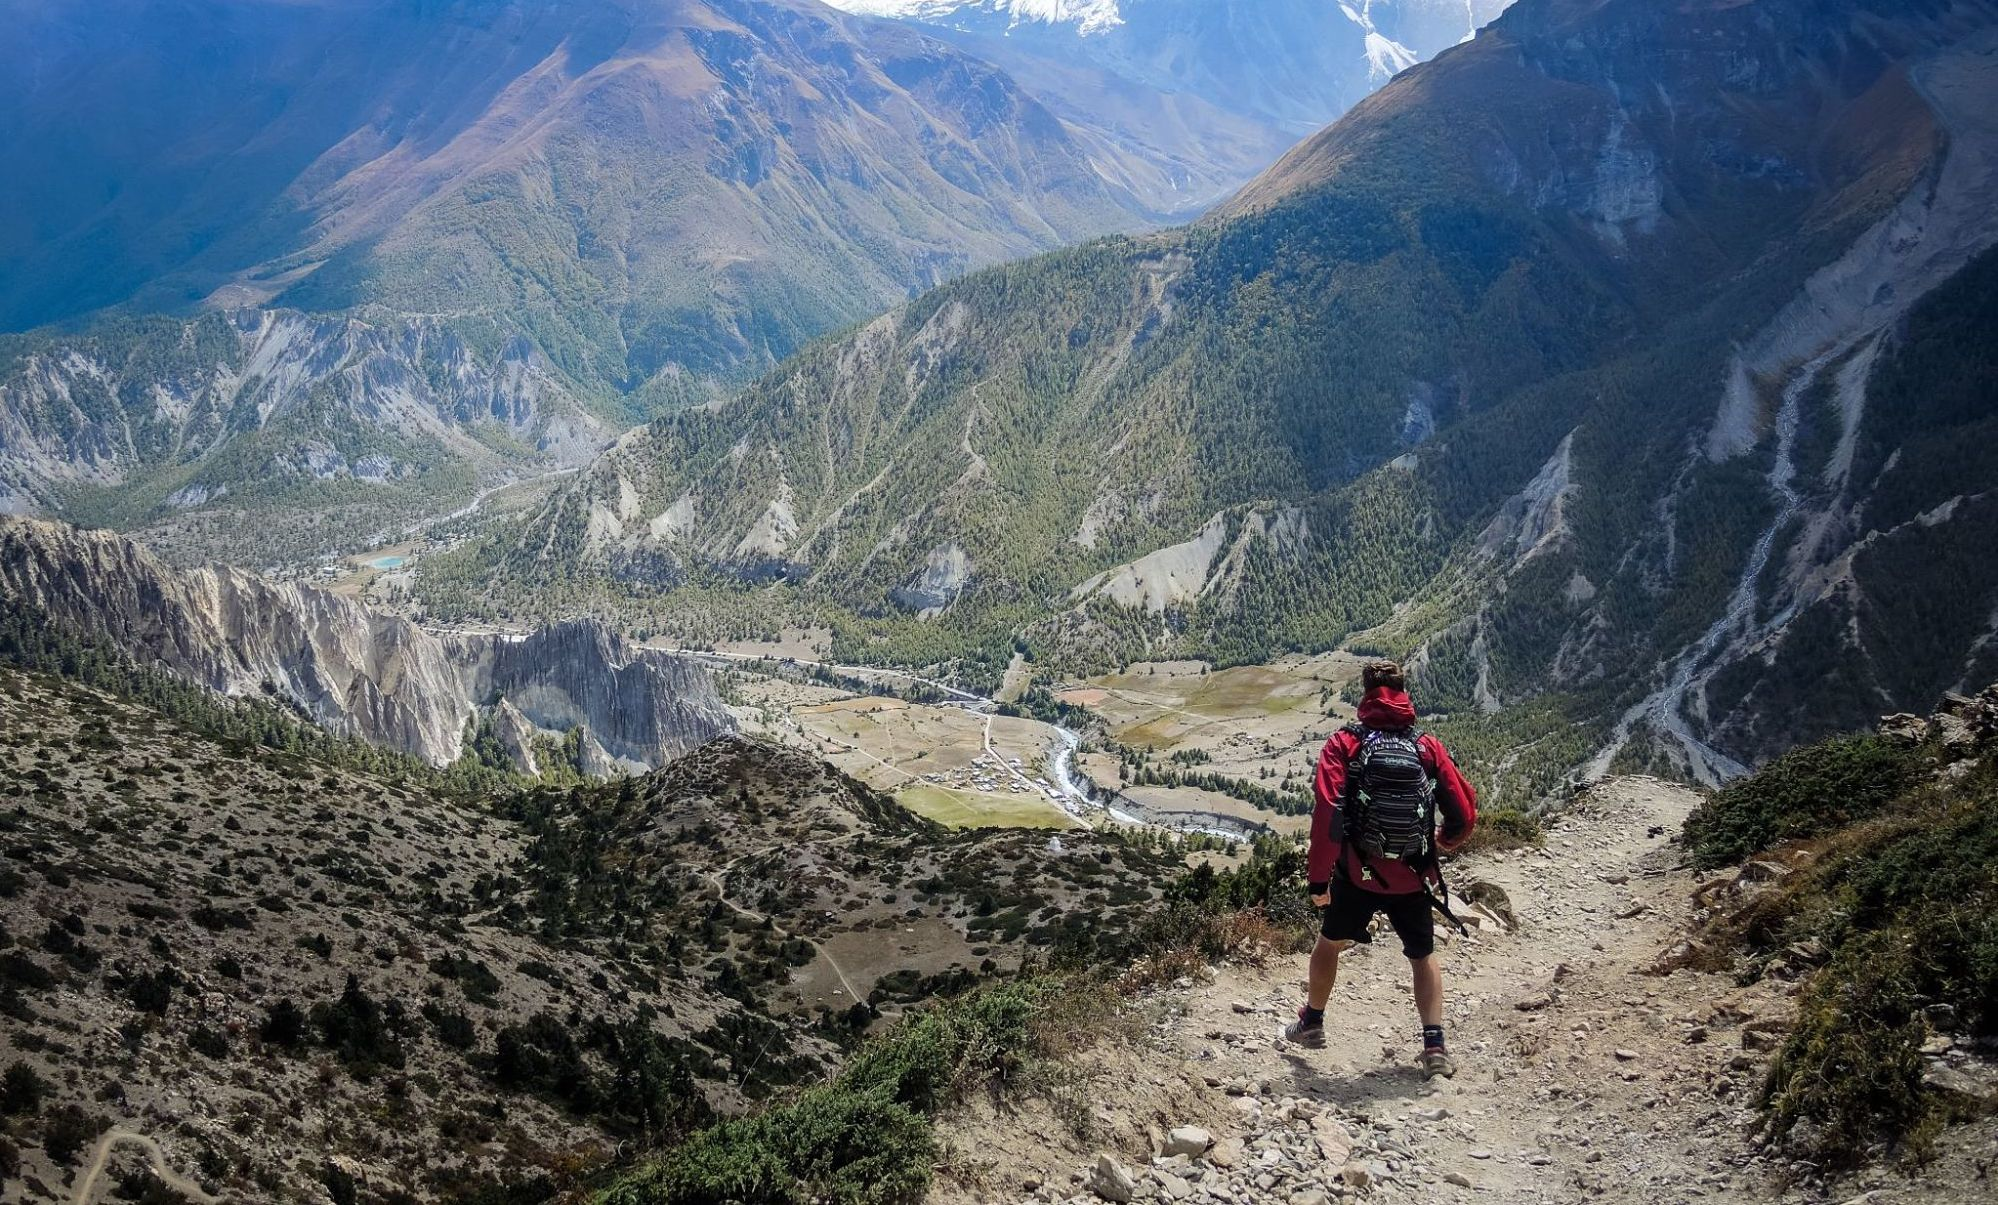 Trekking in Nepal - By Mountain People